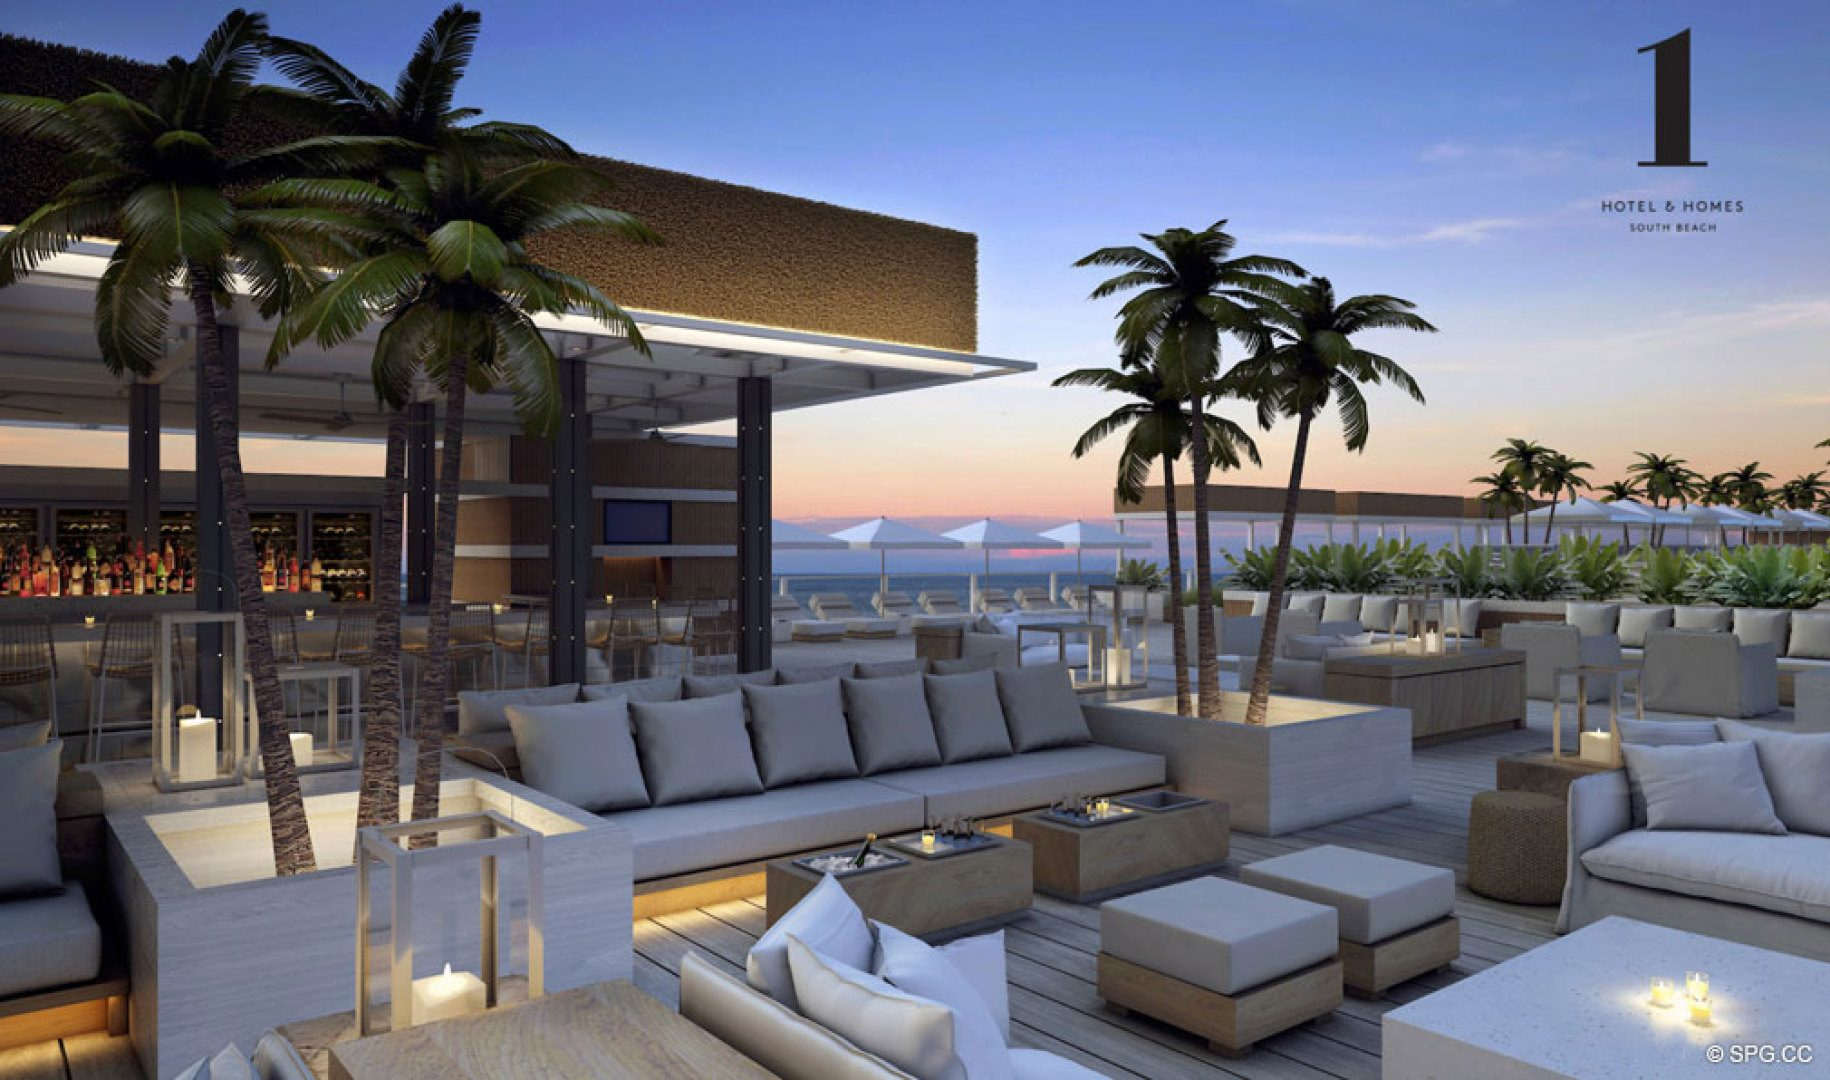 1 Hotel Amp Homes Luxury Oceanfront Condos In Miami Beach